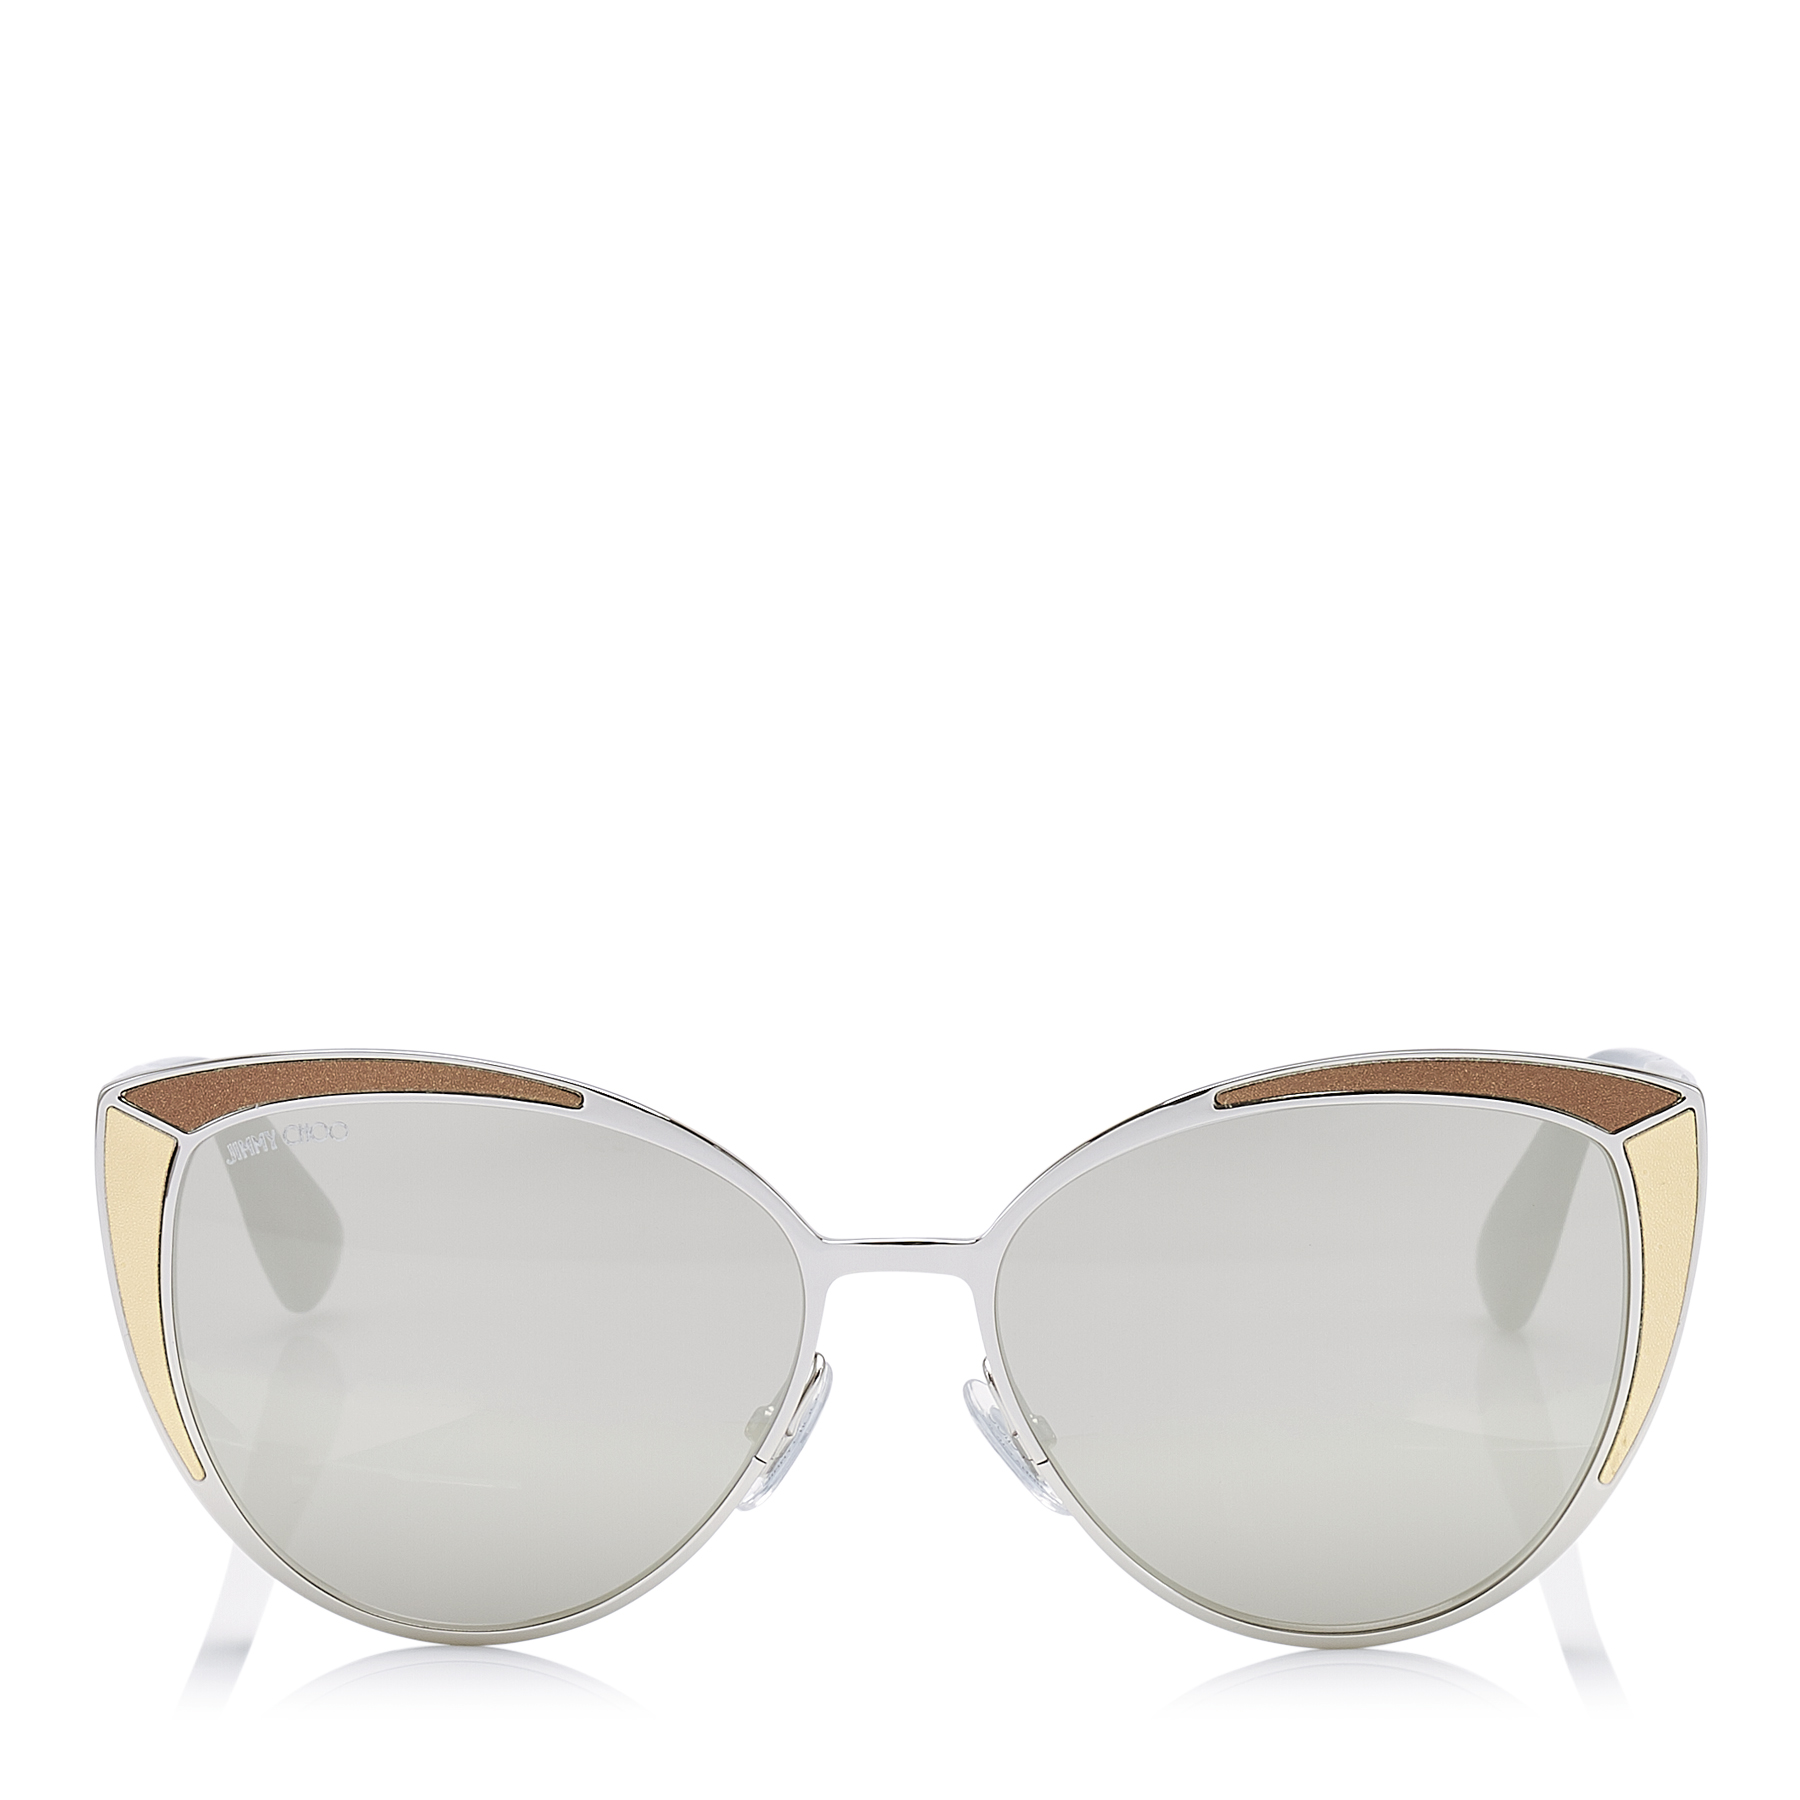 DOMI/S Metal Framed Cat Eye Sunglasses with Snakeskin Leather Detail